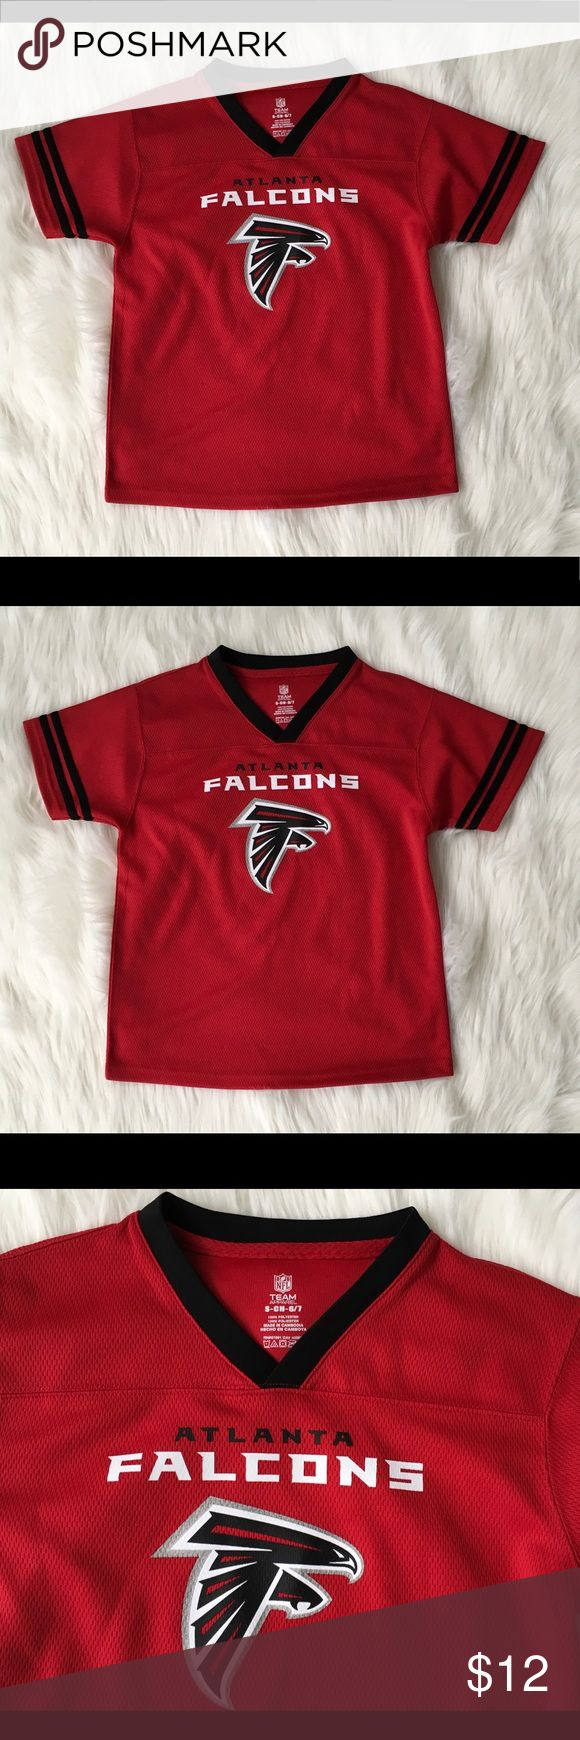 "Atlanta Falcons Youth Football NFL Jersey SZ S 6/7 Atlanta Falcons Boys Jersey NFL Team Apparel  Boys Size Small 6/7 Red Arm Pit to Arm Pit 16.5"" laying flat  Total Length 21"" Clean and Smoke Free Home NFL Team Apparel Shirts & Tops"